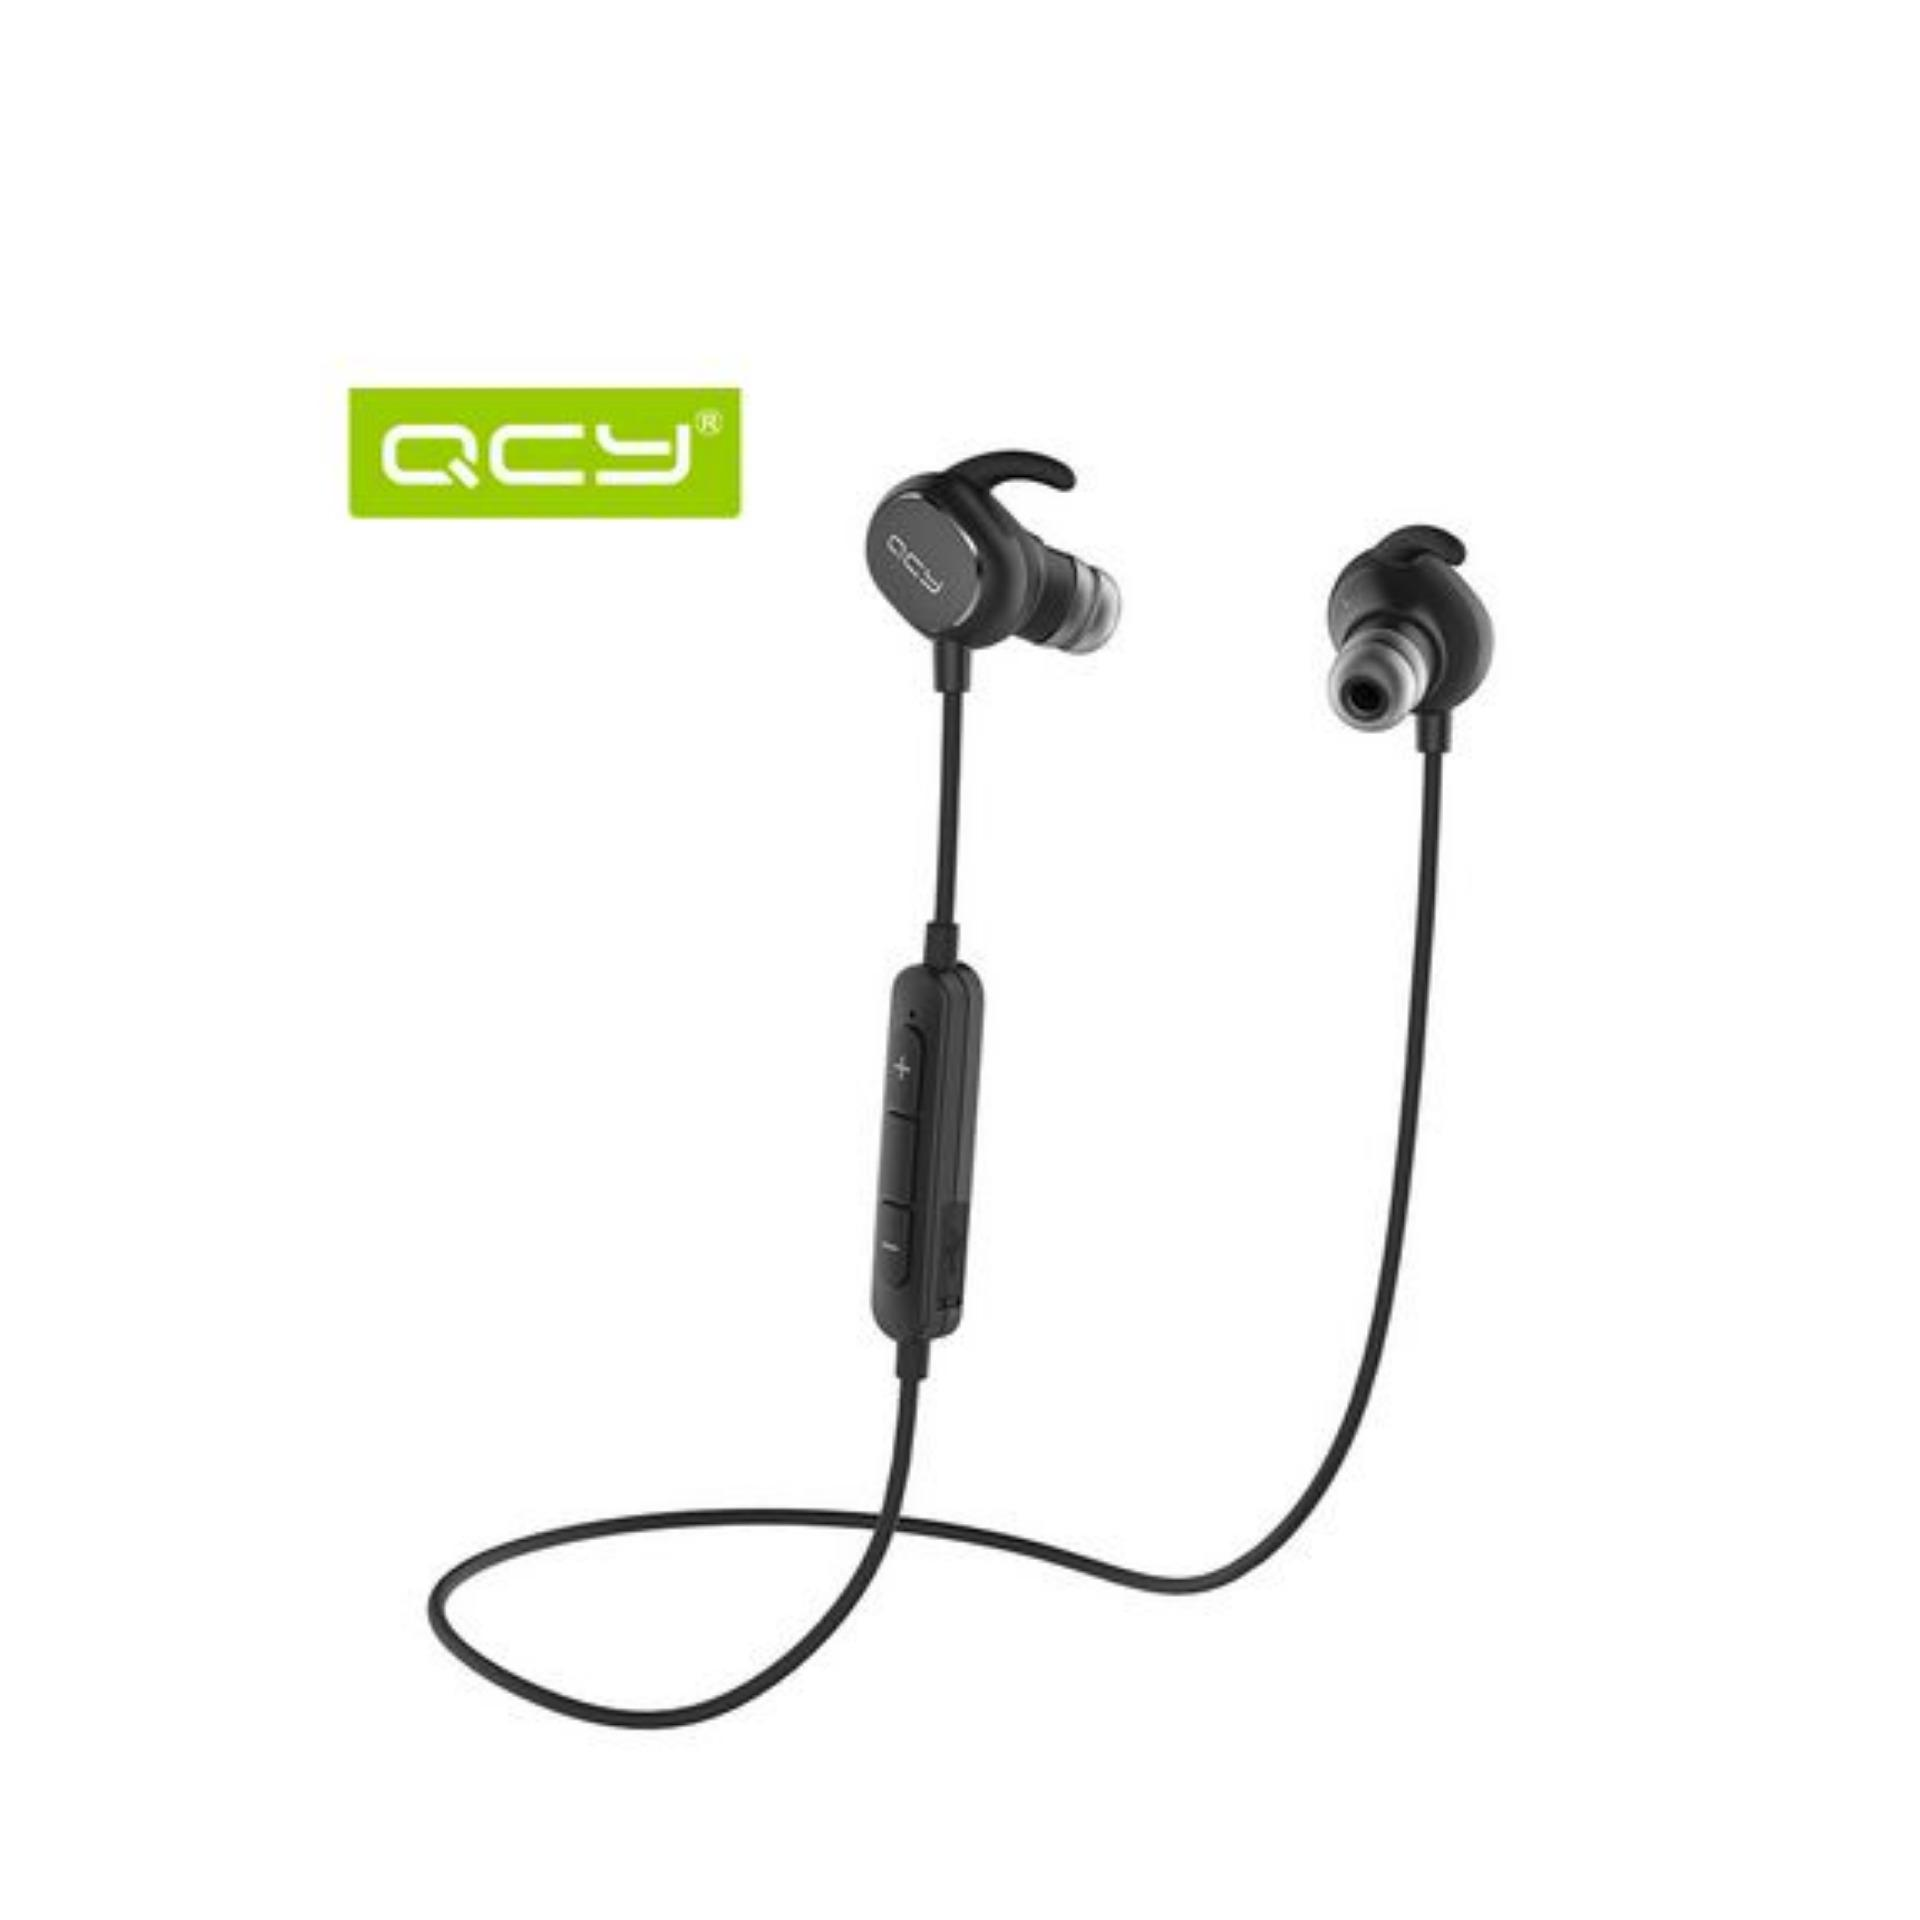 Harga Qcy Qy19 Headphone In Ear Stereo Sport Bluetooth V4 1 Sweatproof Qy19 Bluetooth Headset Wireless Earphone Sport Driving English Voice 2016 New For Iphone Xiaomi Pc Smartphones Brand Origin Qcy Bluetooth Headphone Hitam Baru Murah